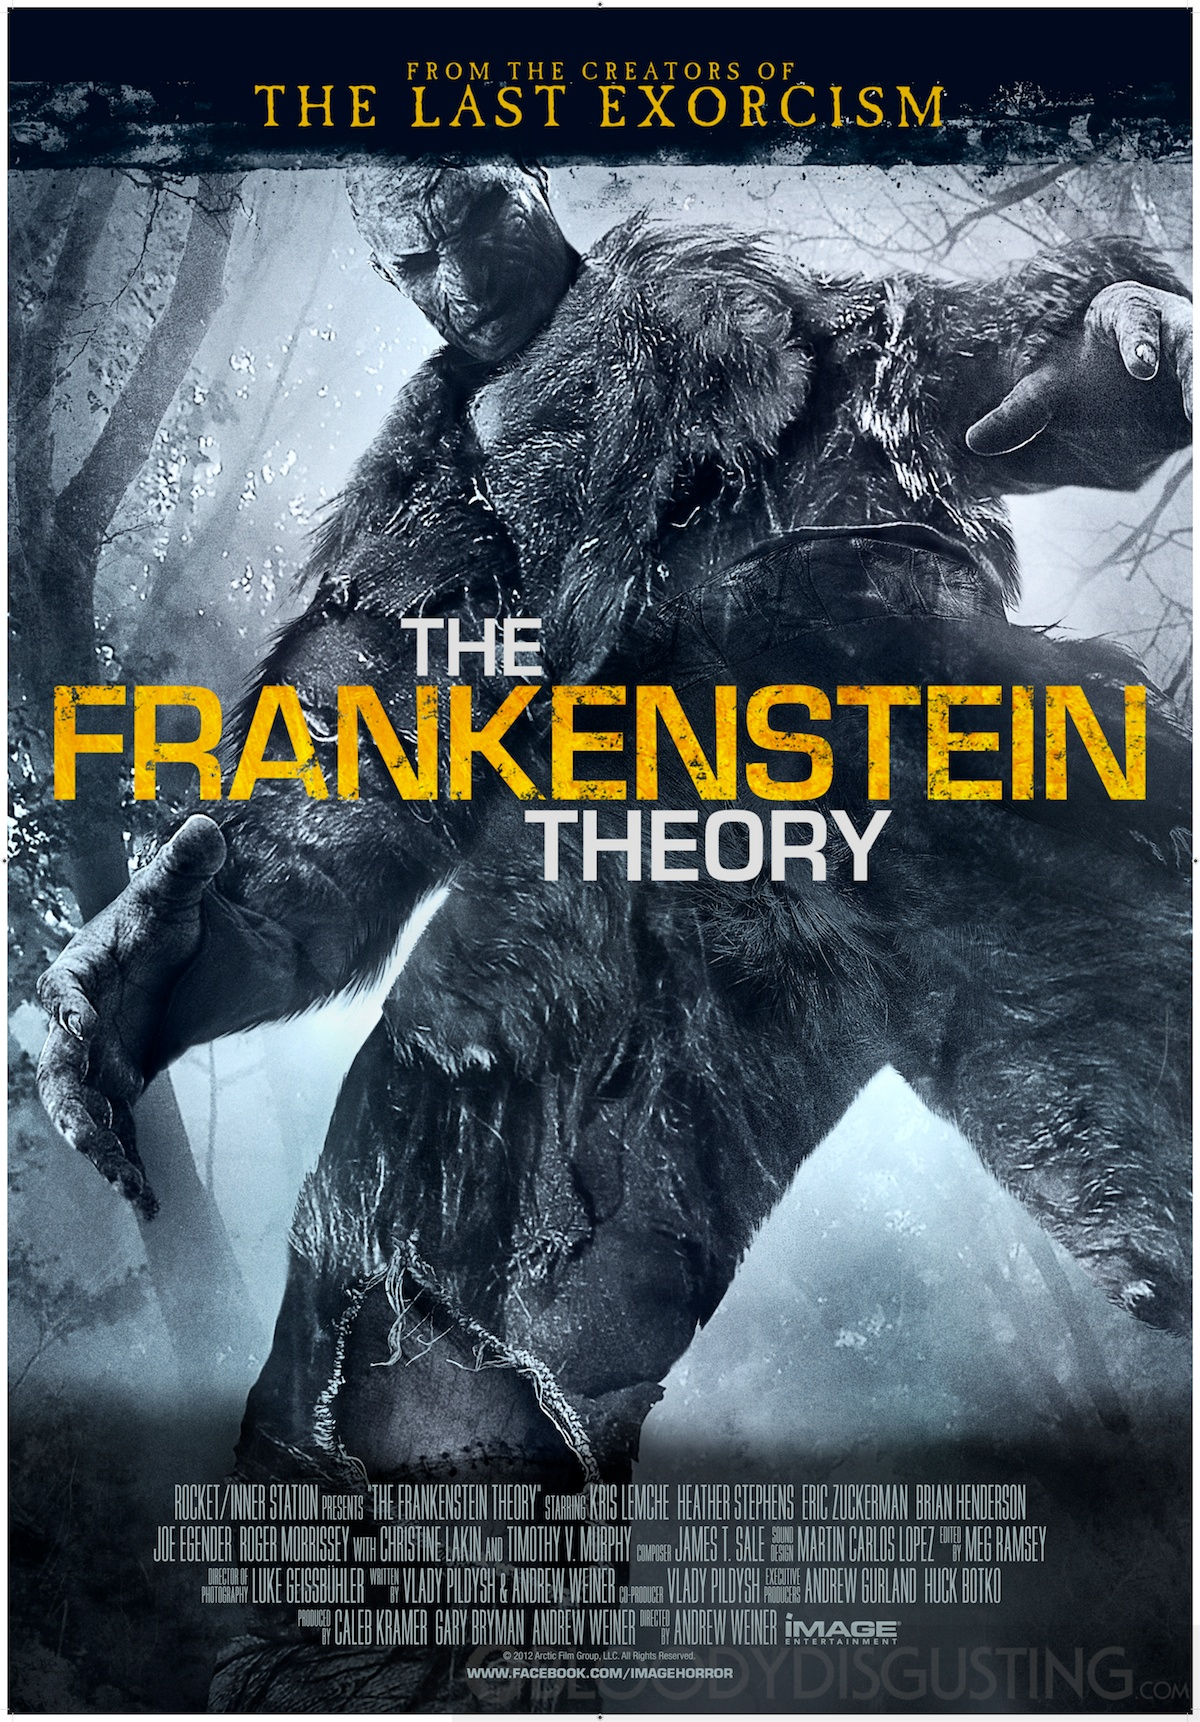 Frankenstein_Theory_Poster_1_18_13